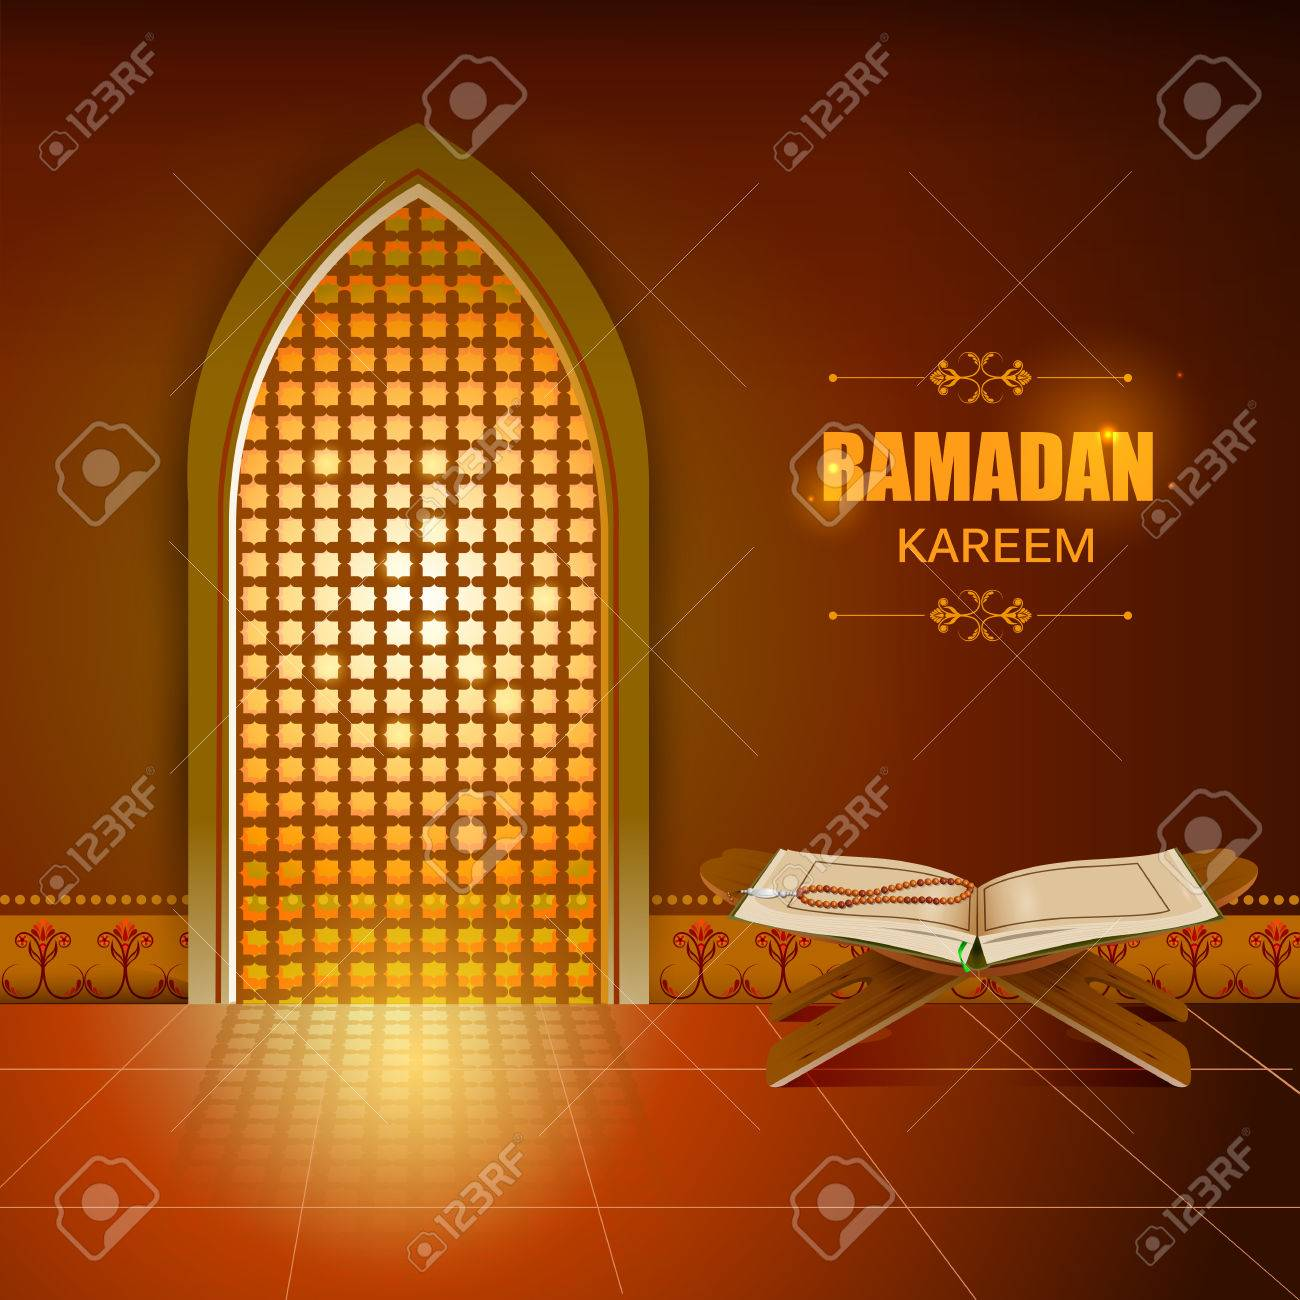 Islamic Design Mosque Door And Window For Ramadan Kareem Happy Eid  Celebration Background Stock Vector